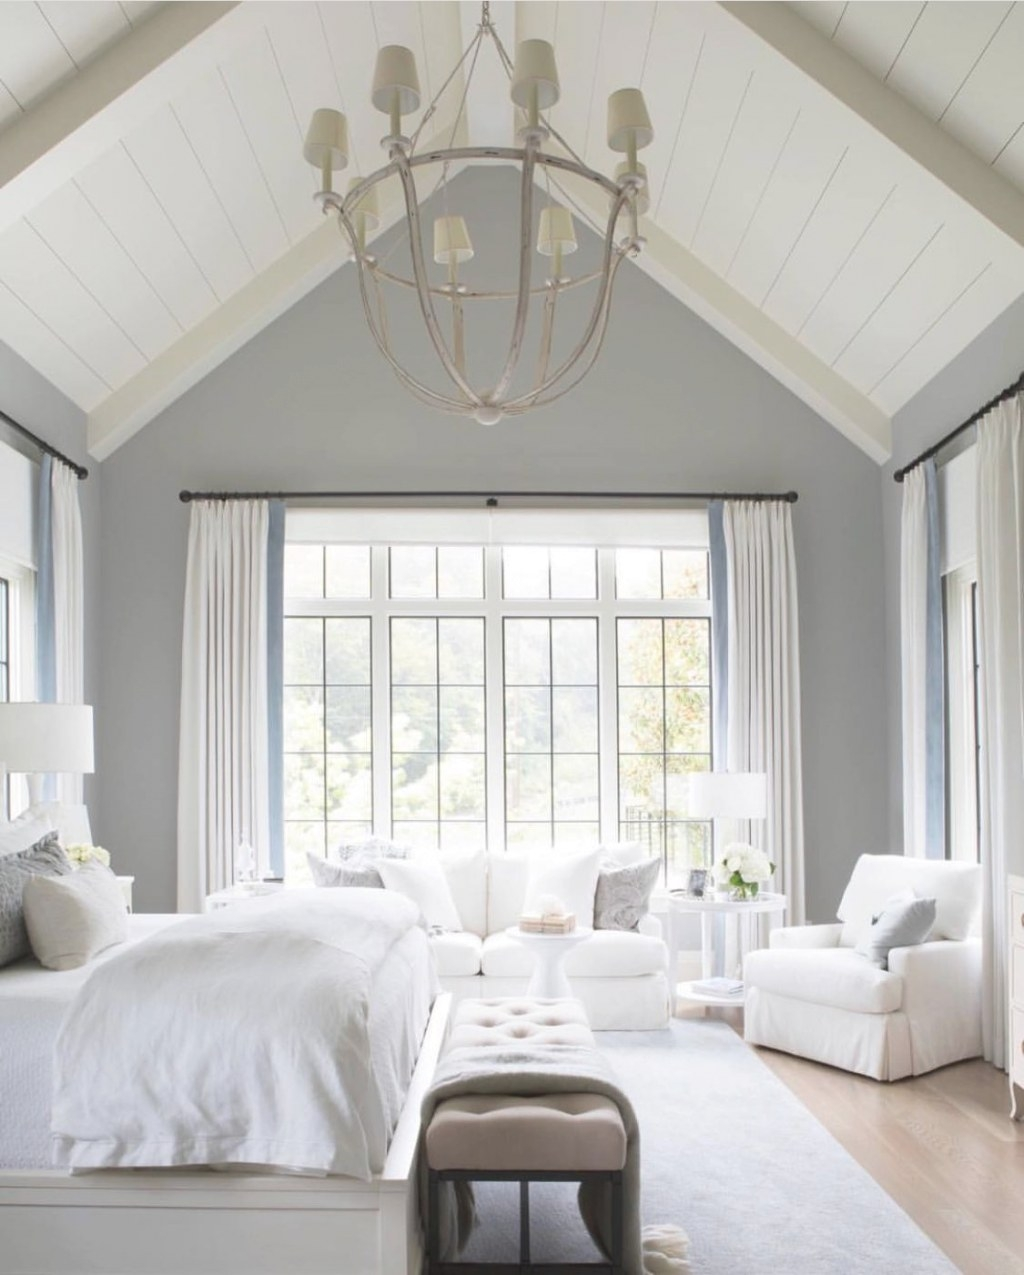 So Simple, So Pretty. Love The Shiplap Style, Wood Plank with White And Wood Bedroom